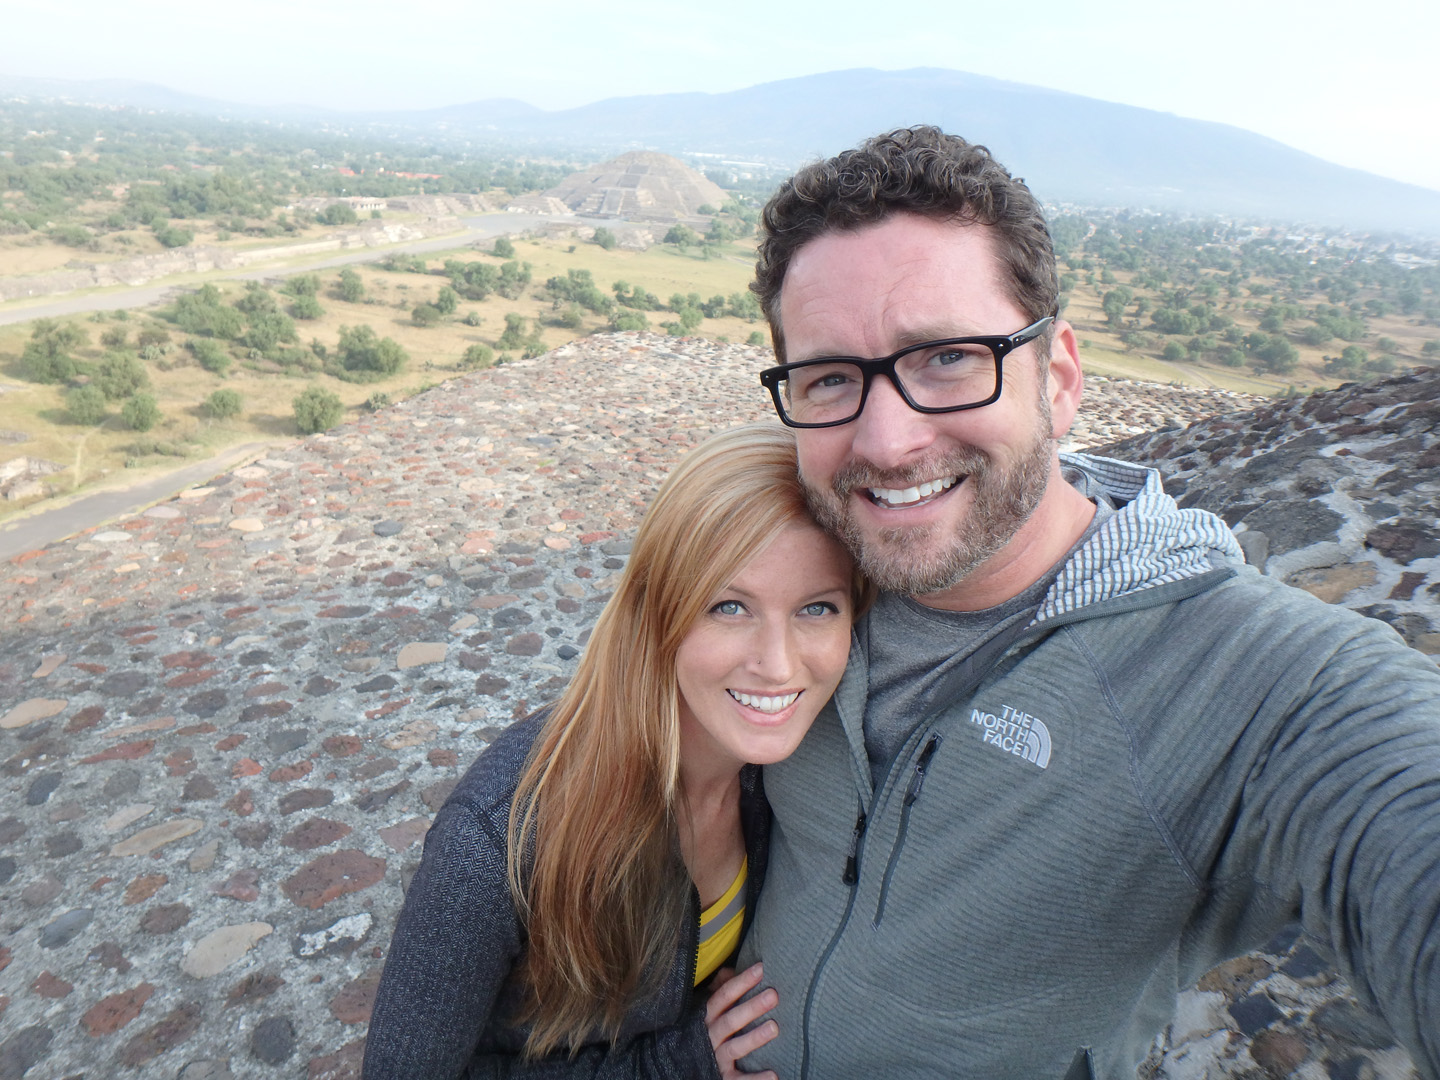 Ashley and Burnie were just the cutest couple in this snapshot from Mexico.